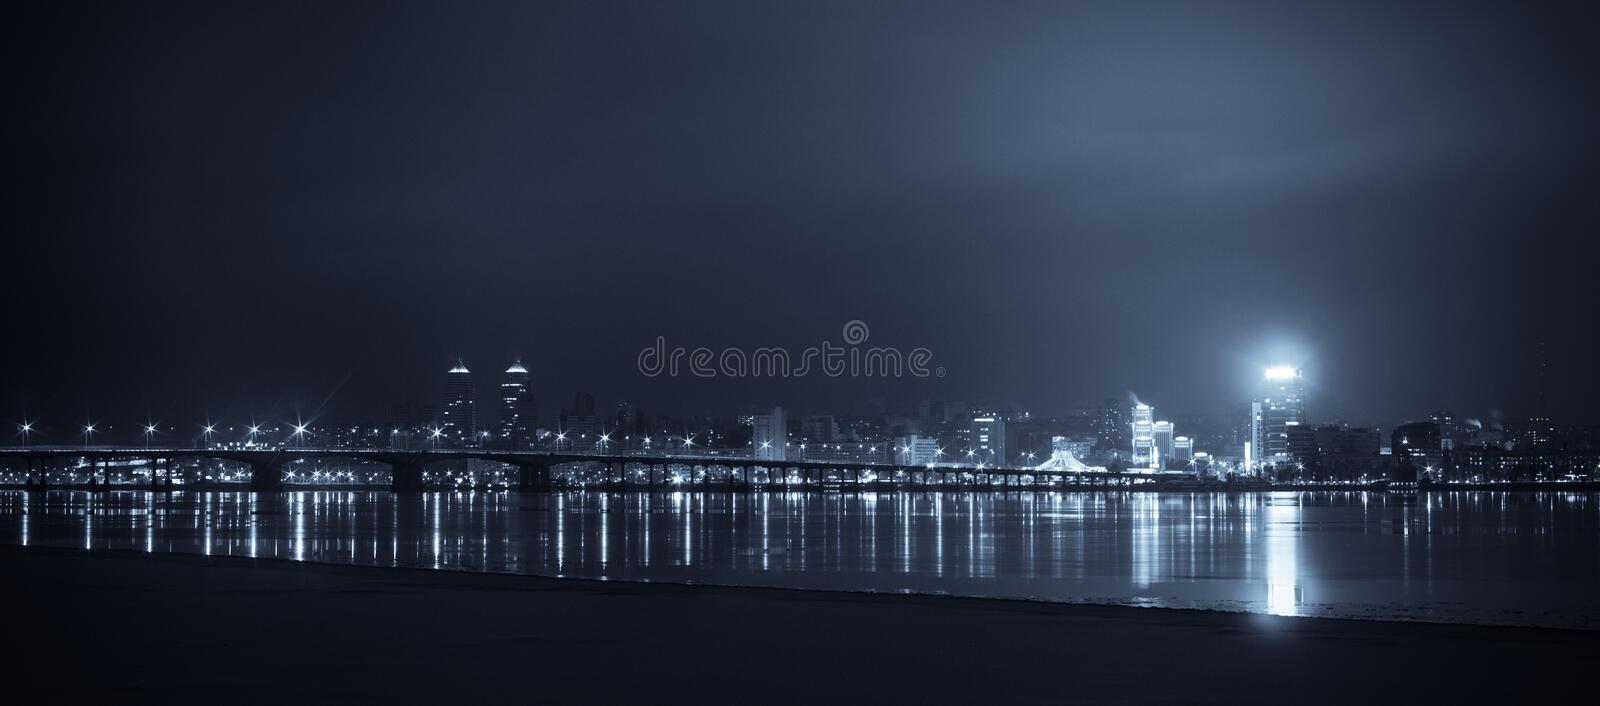 City of night. Night Skyline of Dnipropetrovsk with Reflection in the river Dnipro, Ukraine royalty free stock photography